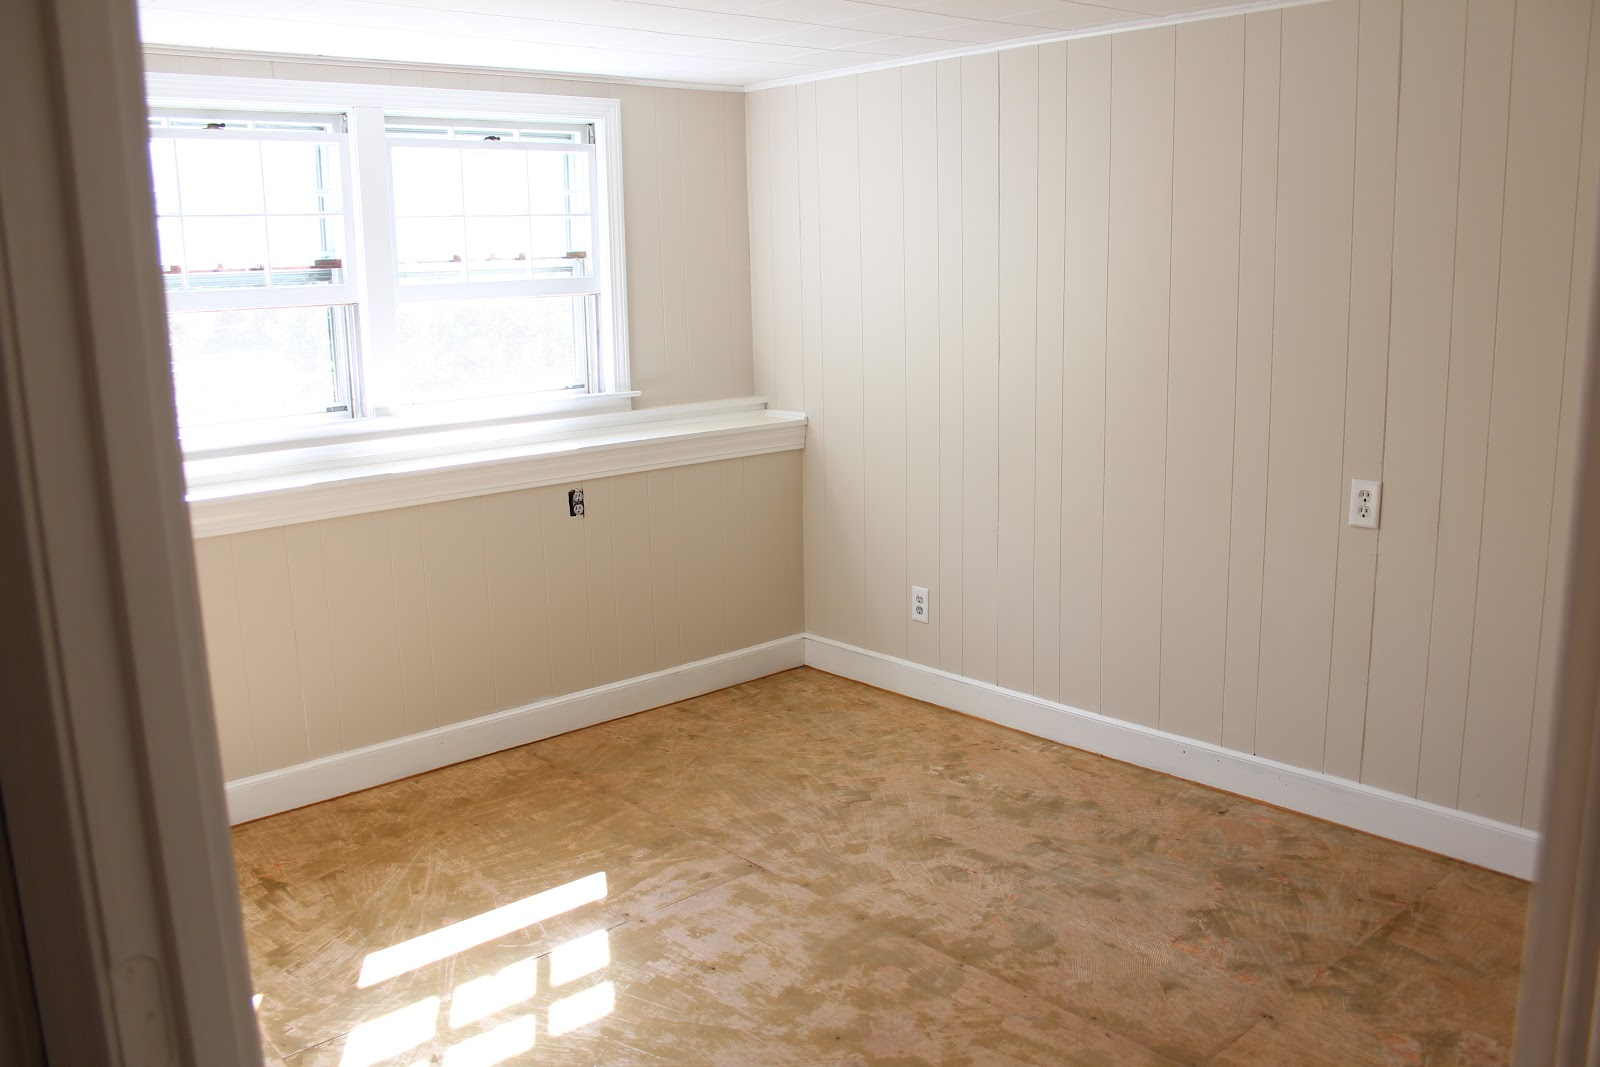 Painting over wood paneling before and after Can you paint wood paneling